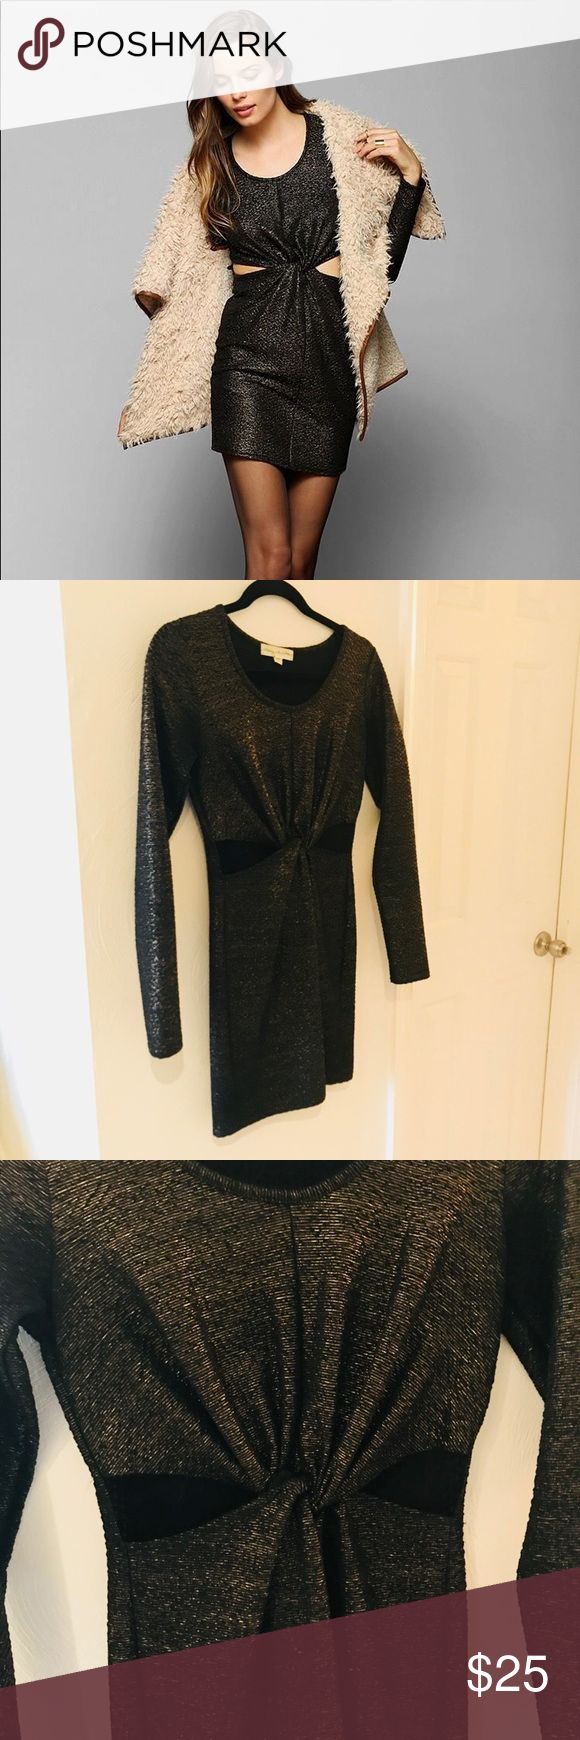 🎄Urban Outfitters Holiday Dress✨ Gorgeous long sleeve body con dress. Purchased from Urban Outfitters, the brand is Staring at Stars✨ Sexy cutouts in front. Size small.  Only worn once for a New Years party last year! Perfect for any holiday party. Gold metallic threading makes the dress really eye catching! Make an offer or bundle for a private shipping discount!💛 Urban Outfitters Dresses Long Sleeve